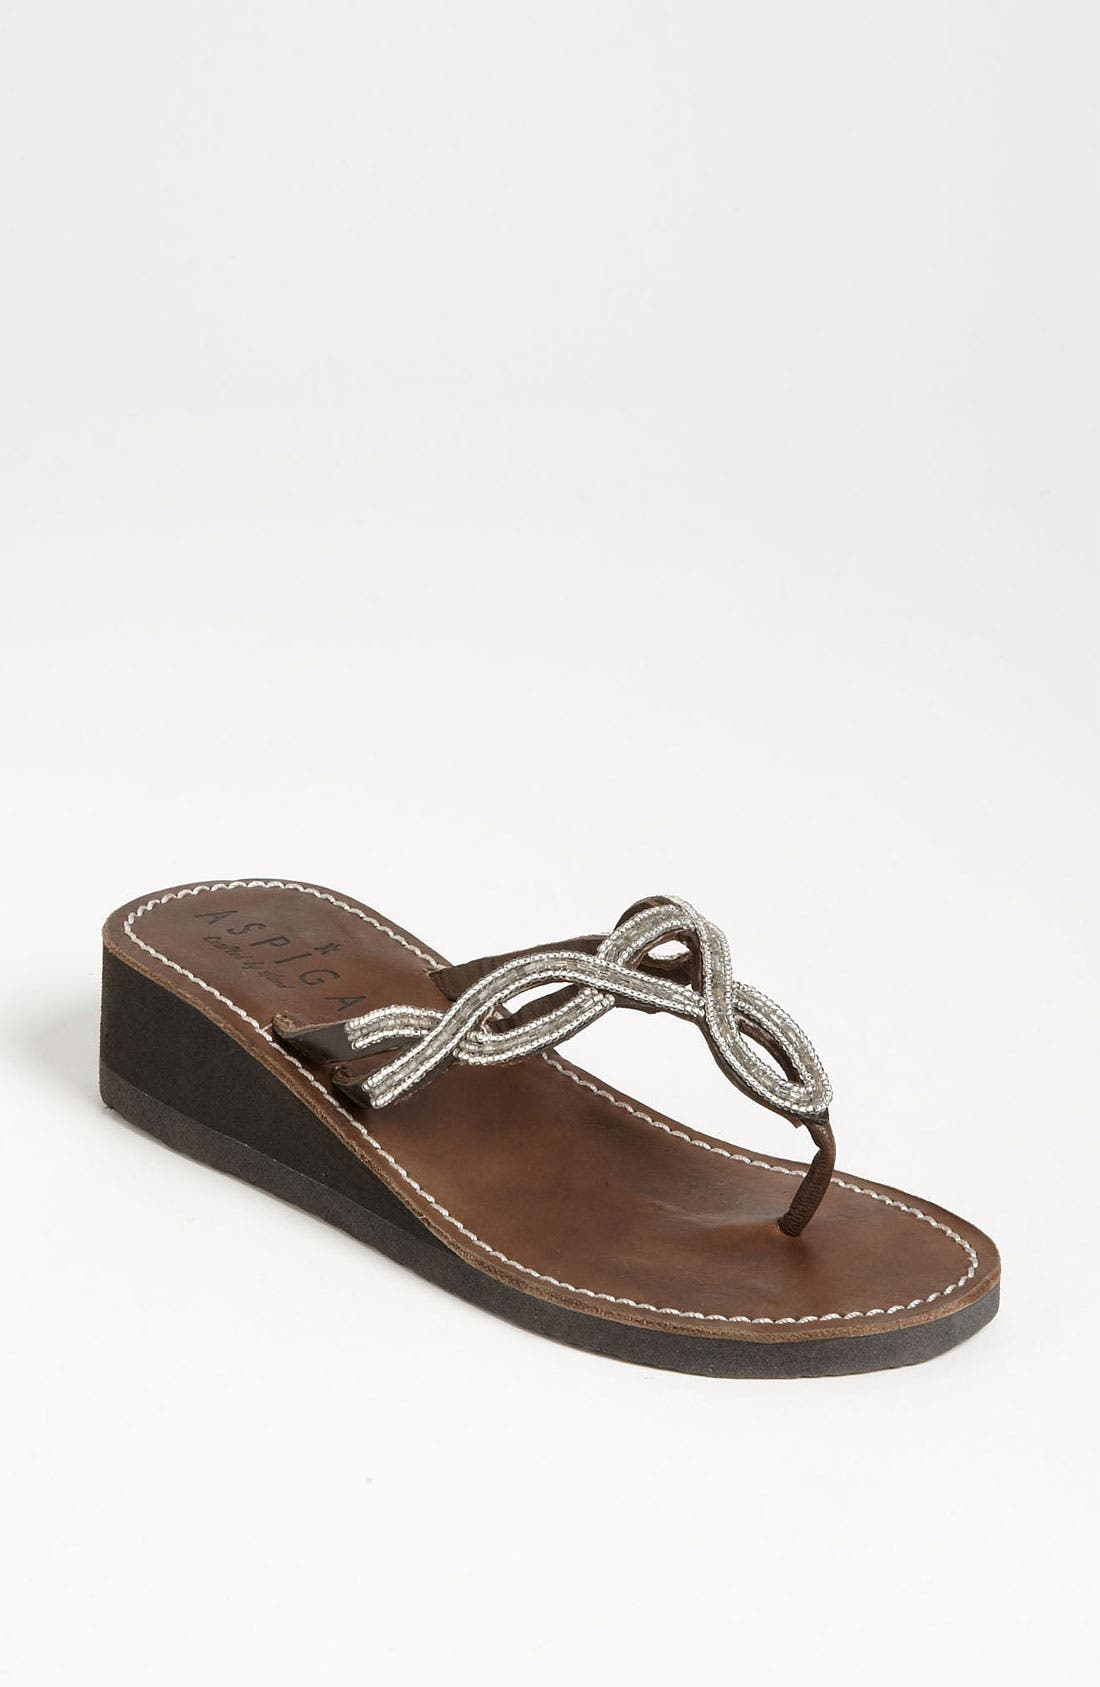 Alternate Image 1 Selected - Aspiga 'Zanzibar' Sandal